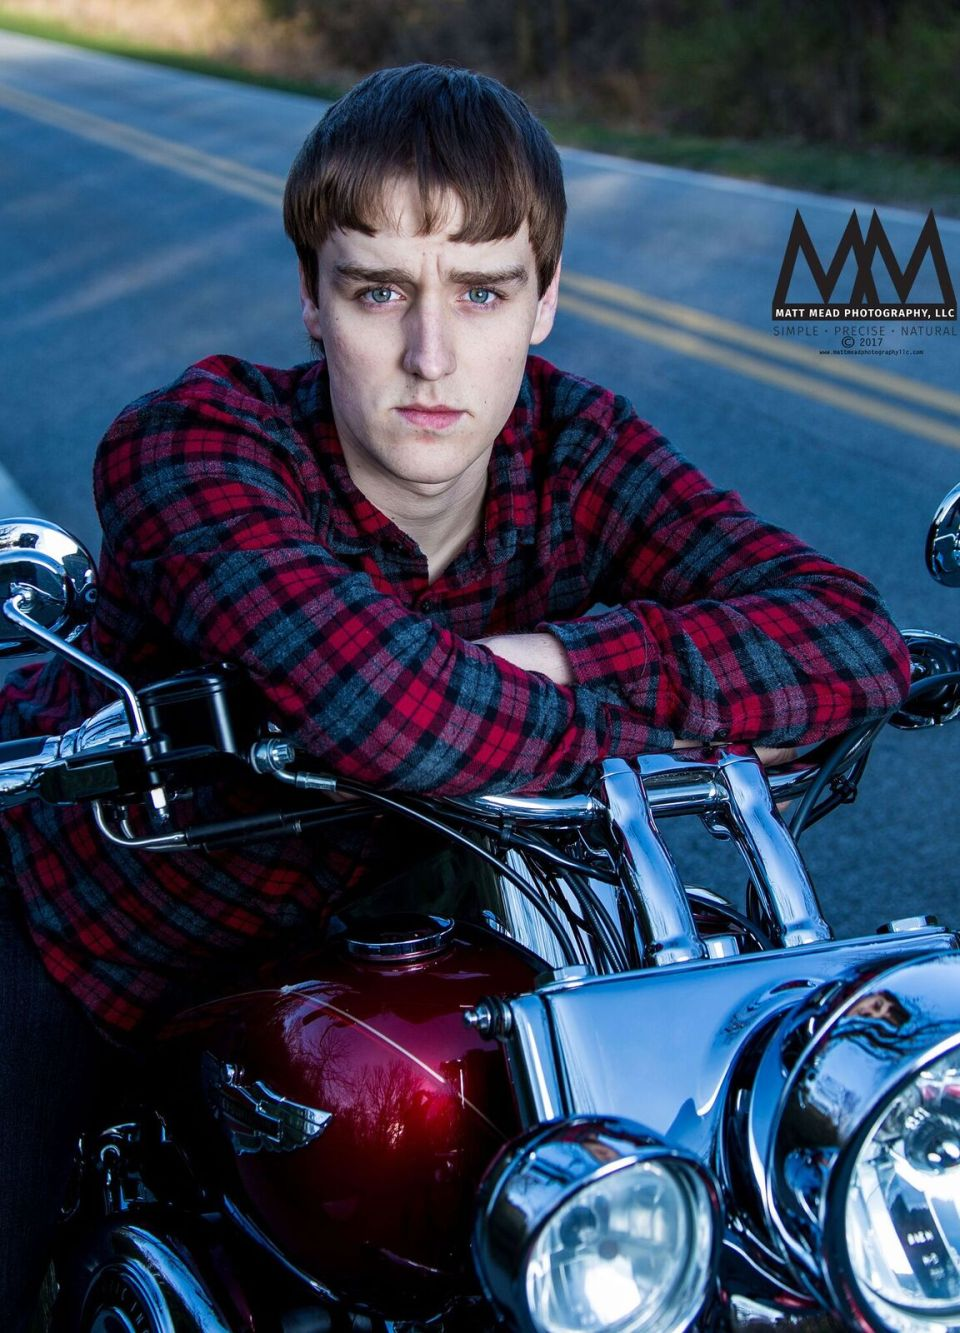 teen rests on motorcycle handlbars for Erie PA senior portrait session at Presque Isle state Park